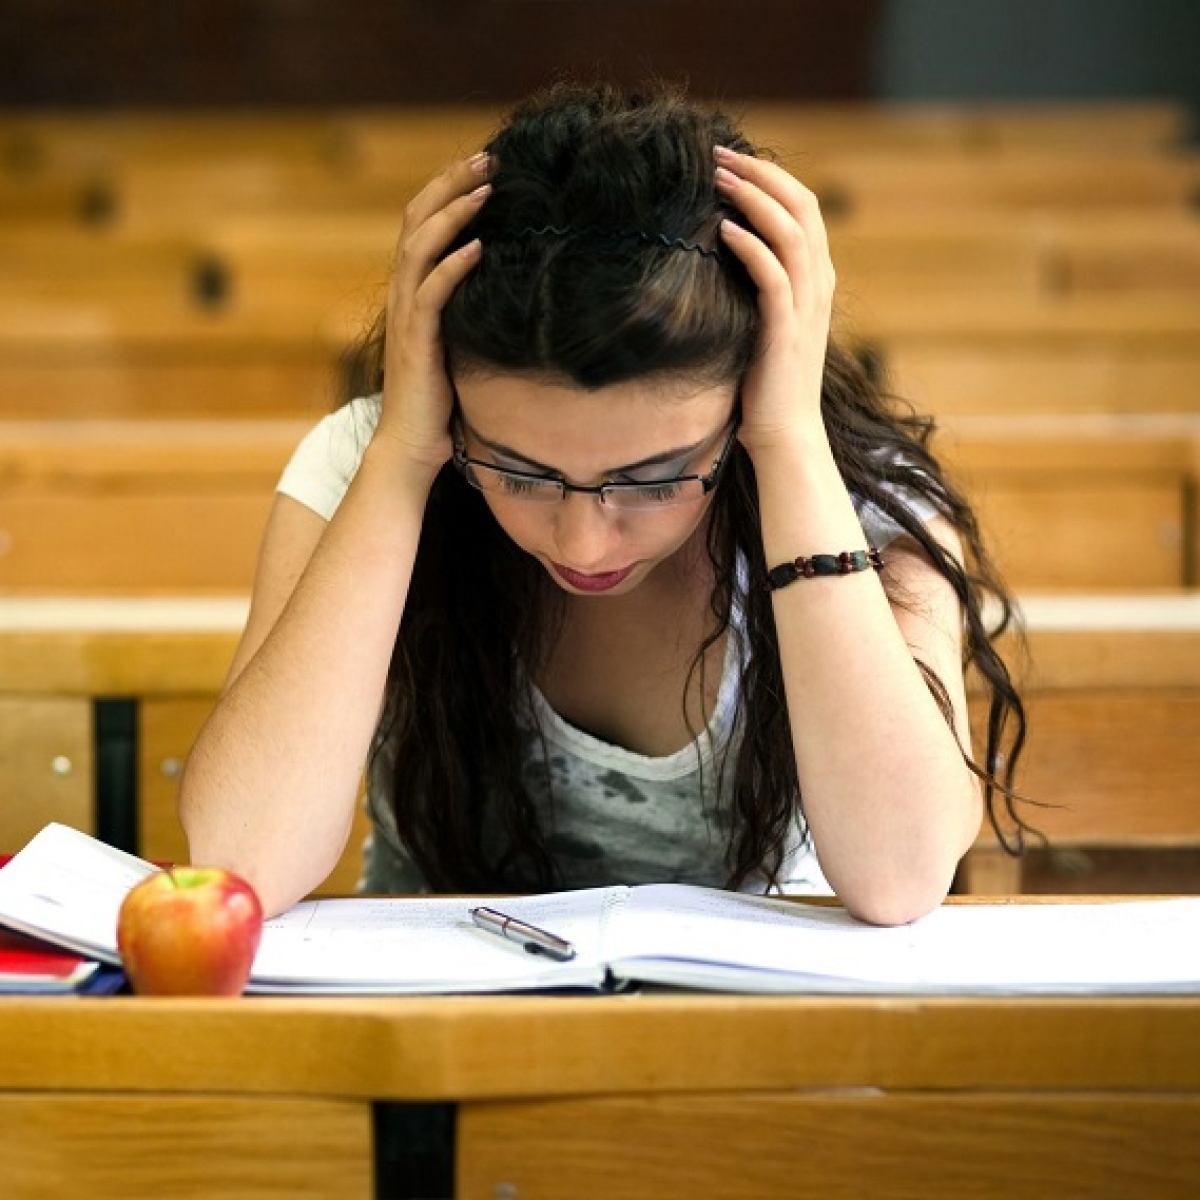 #MentalHealth: Dealing with study pressure, and resentment towards dad… Dr Anjali Chhabria helps find a solution